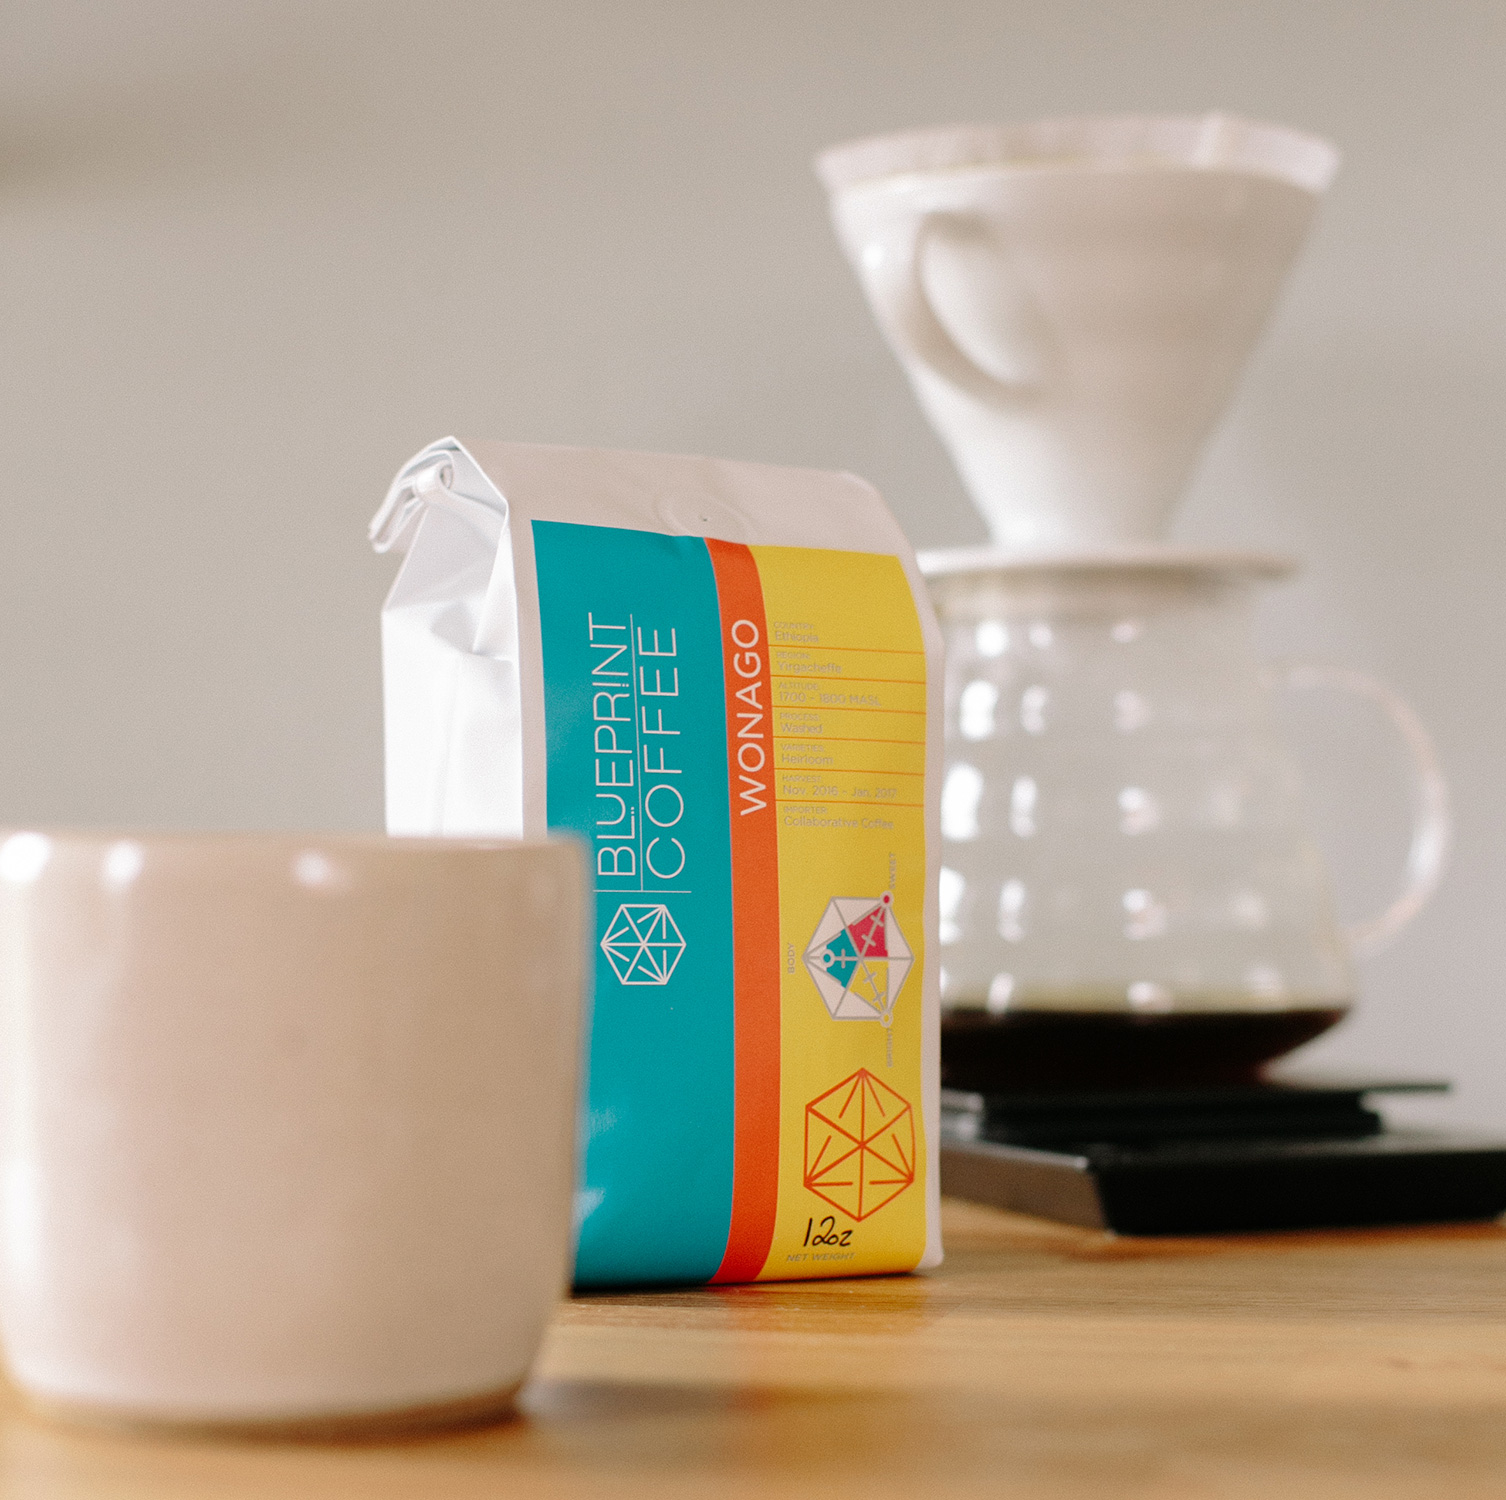 Ratings archive roast ratings ethiopia wonago by blueprint coffee is berry light body caramelly malvernweather Gallery